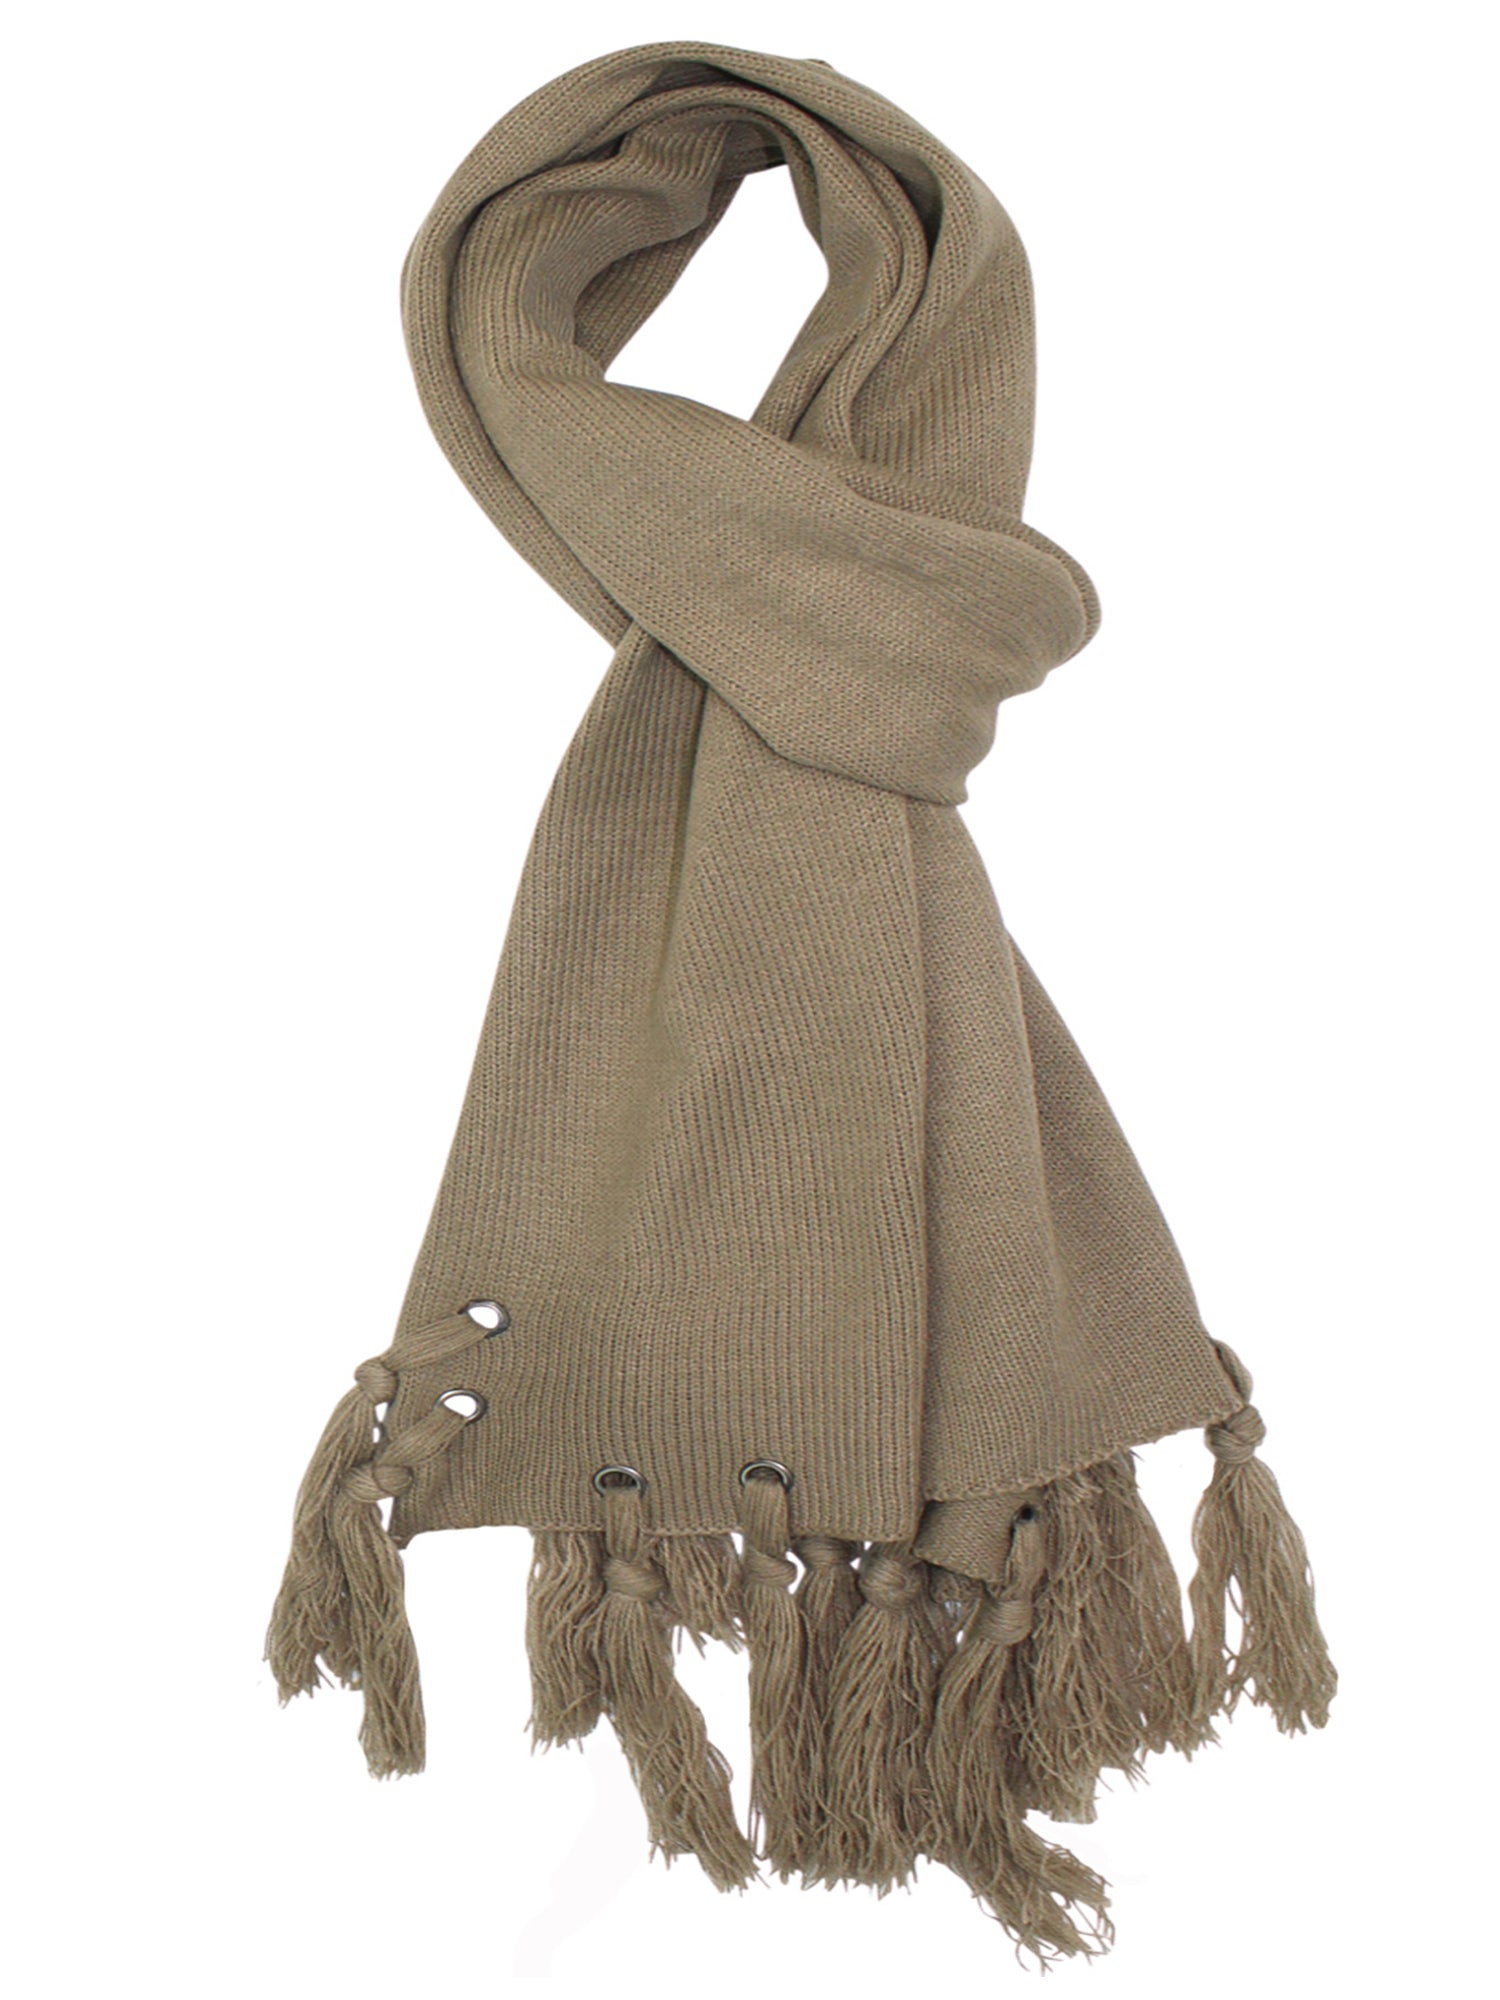 Taupe Scarf With Grommets & Tassels